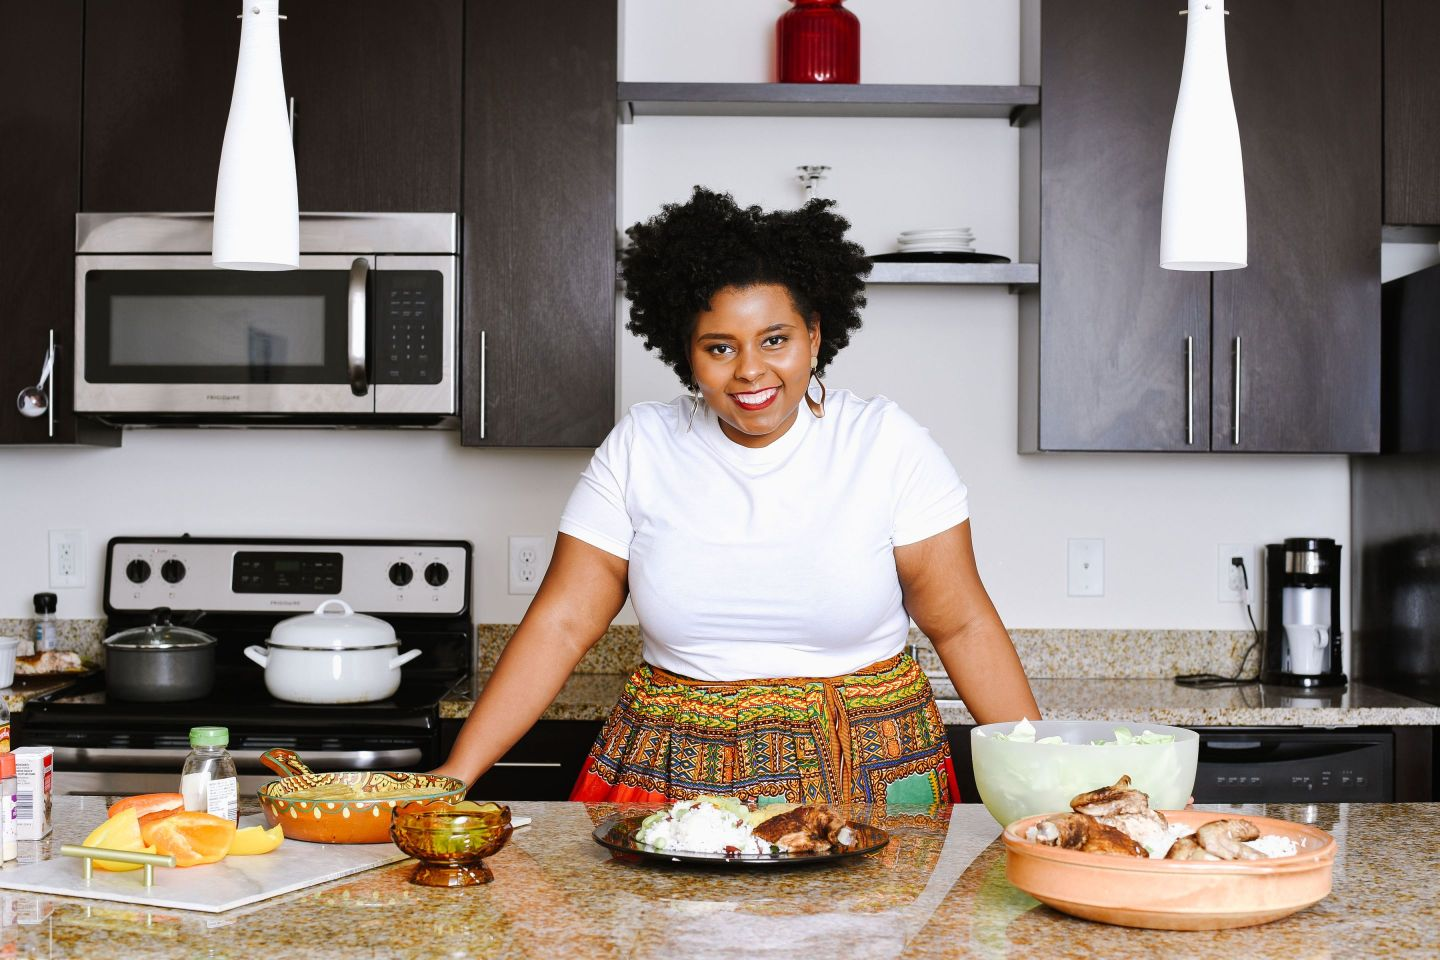 Chakayla71of1-1440x960 North Carolina Chef Gives 3 Tips for Making Cooking at Home Easier